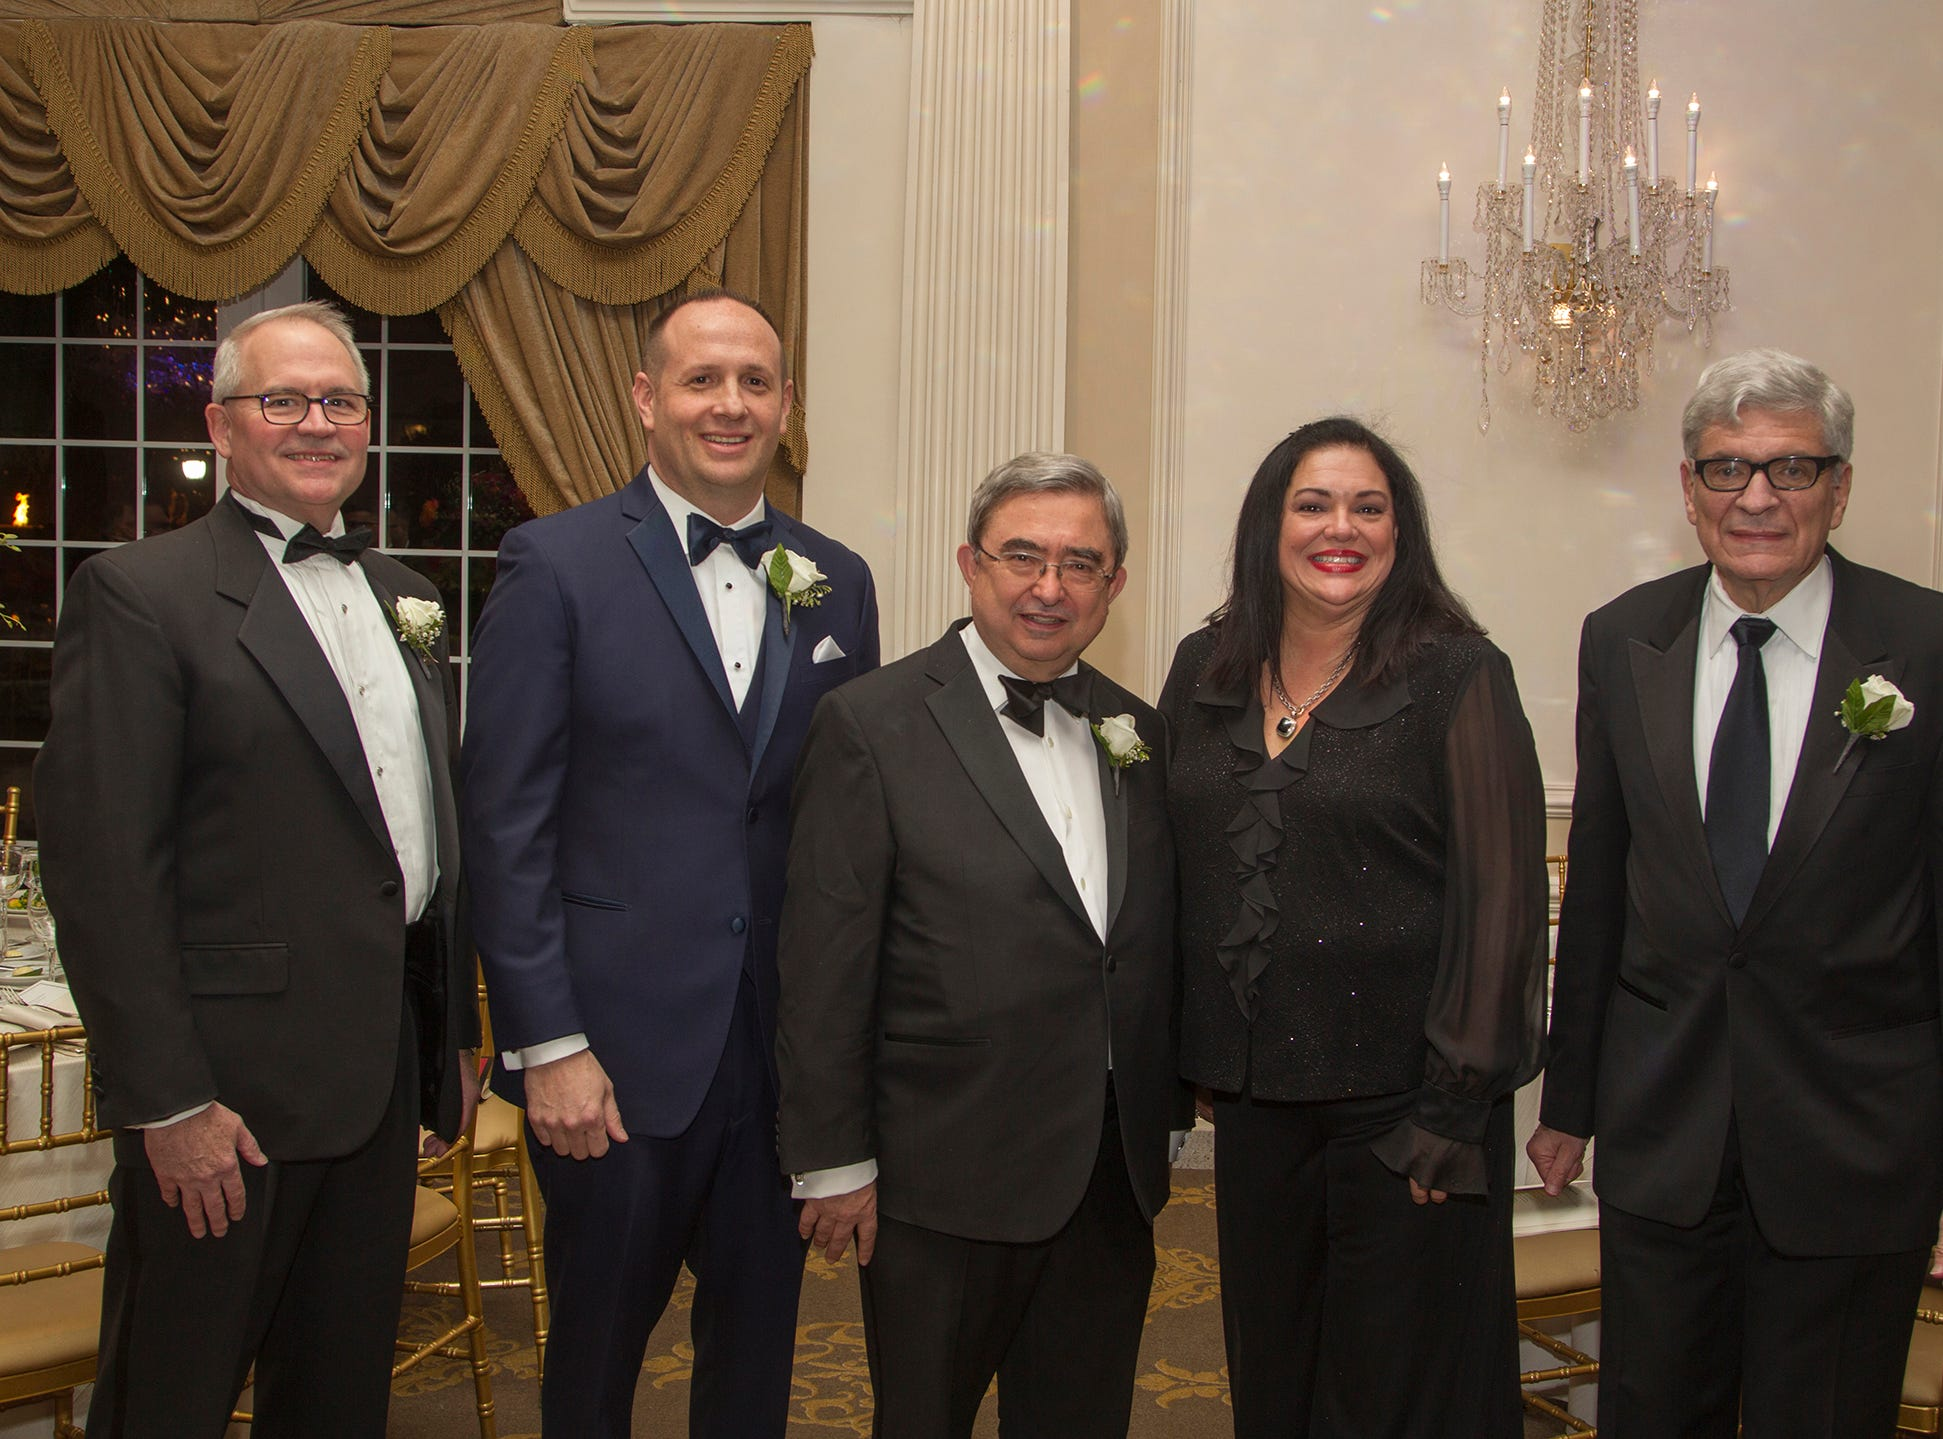 Lee Maas, Michael Hettesheimer, Dr.Peter P. Mercer, Marlene Caride, Ira Kaltman. Ramapo College held its 37th Annual Distinguished Citizens Dinner at Rockleigh Country Club. 03/02/2019